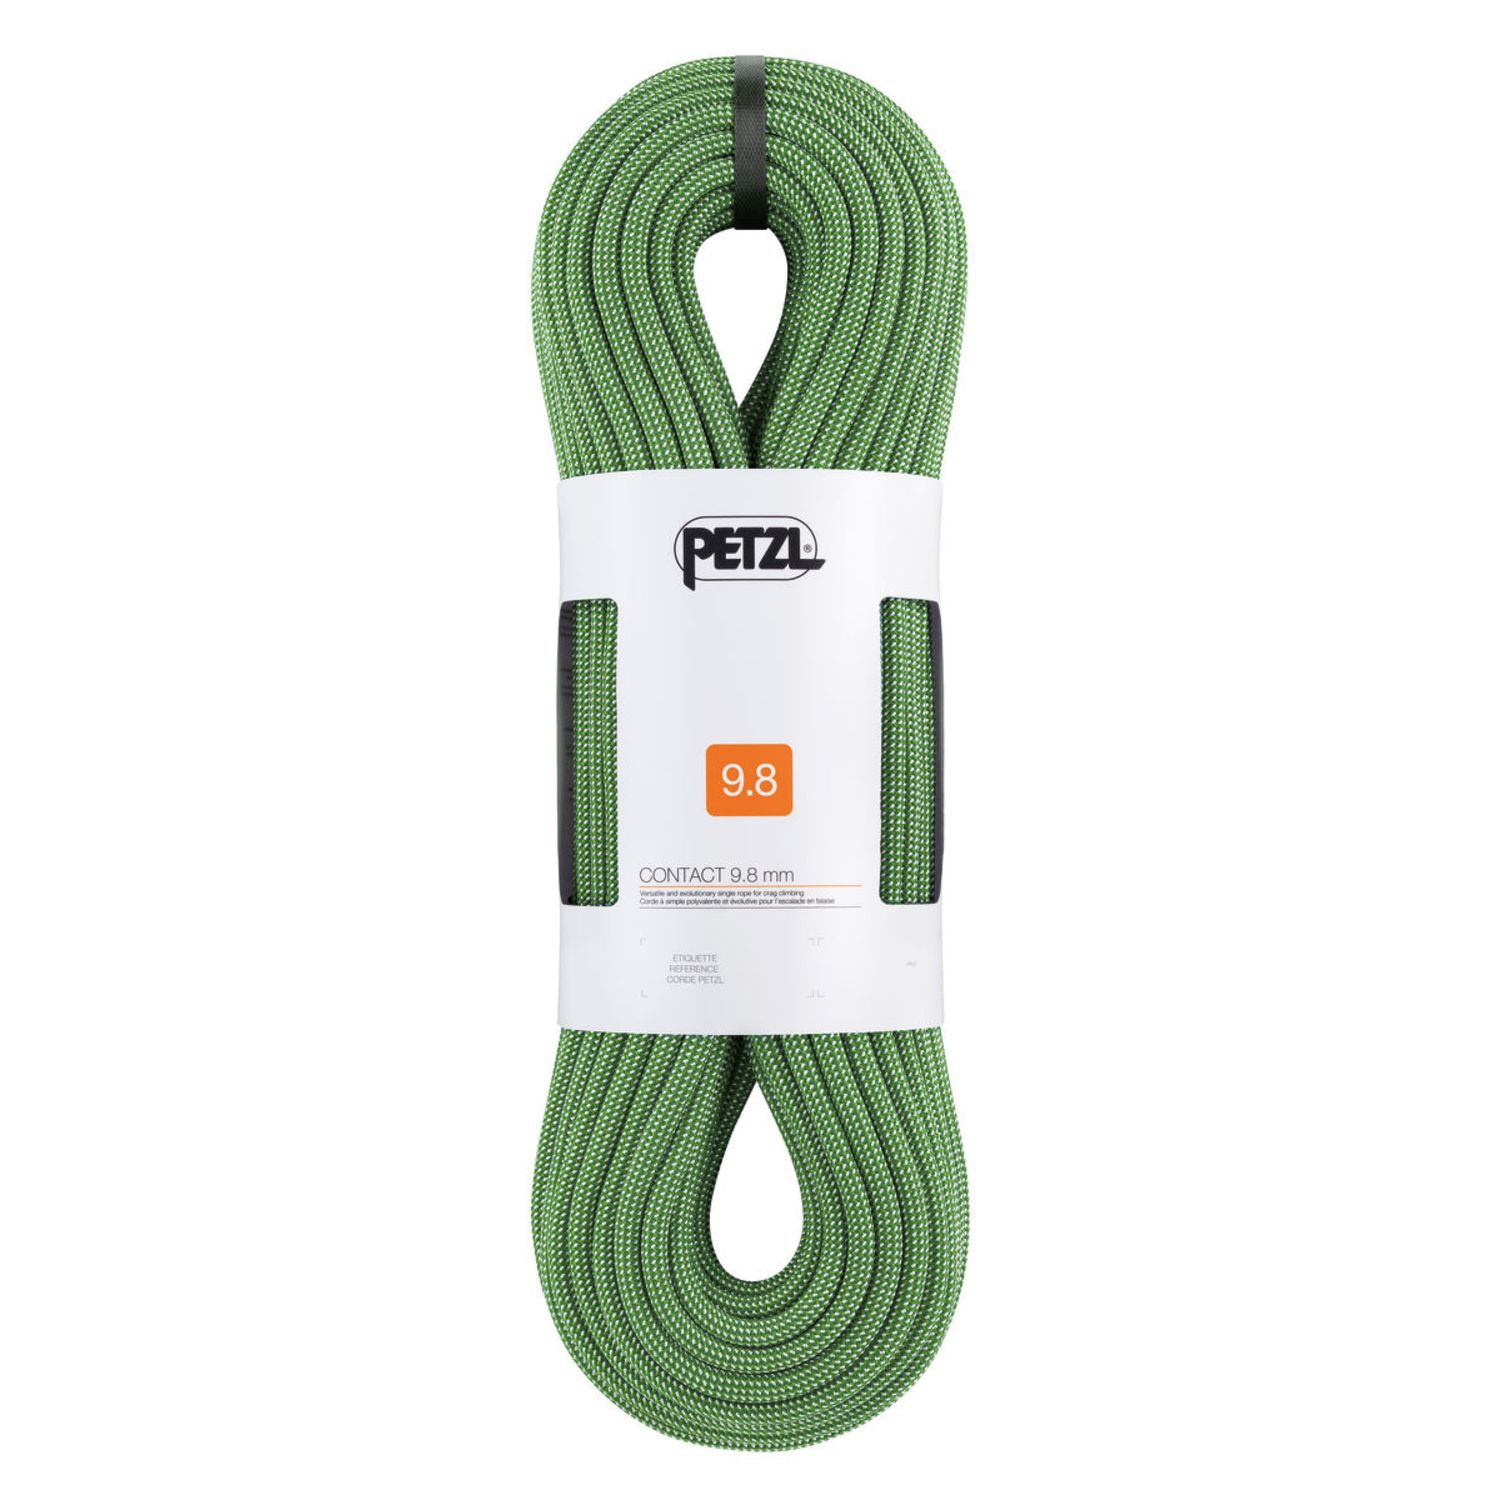 CONTACT 9.8 MM ROPE 70M GREEN